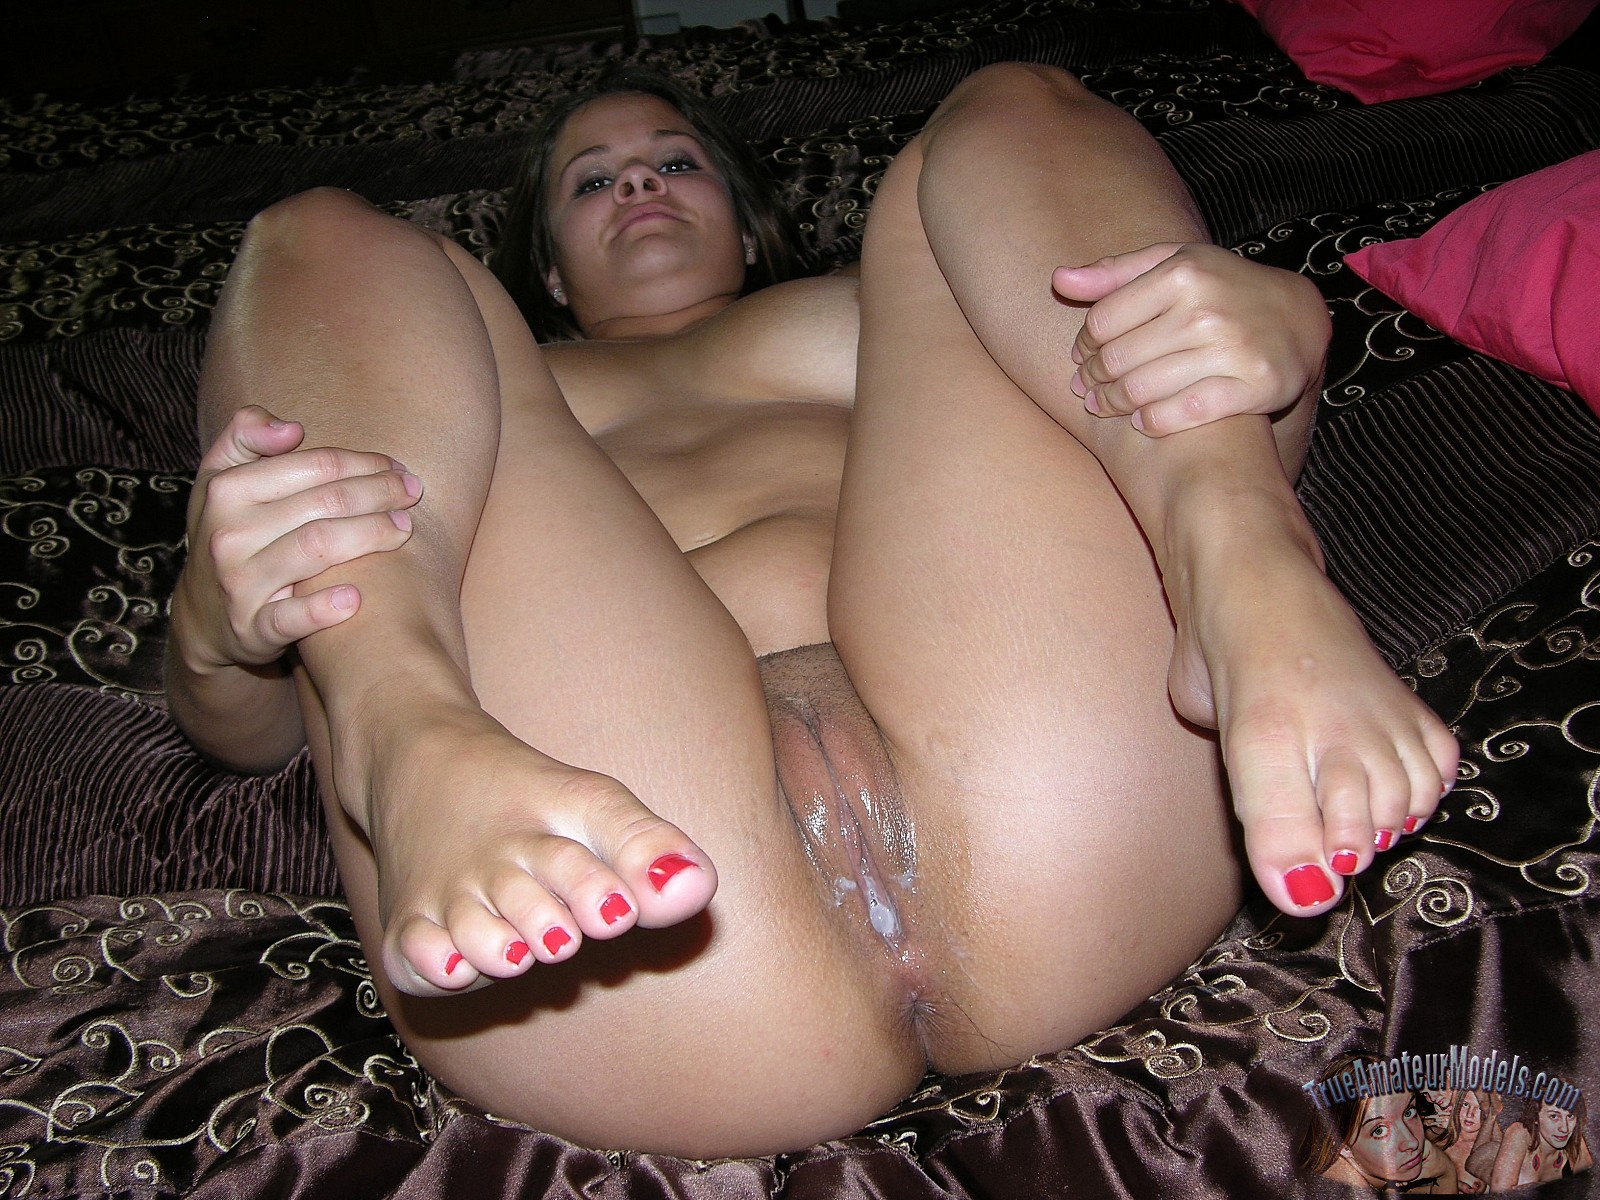 Thick latina pussy creampies intelligible message